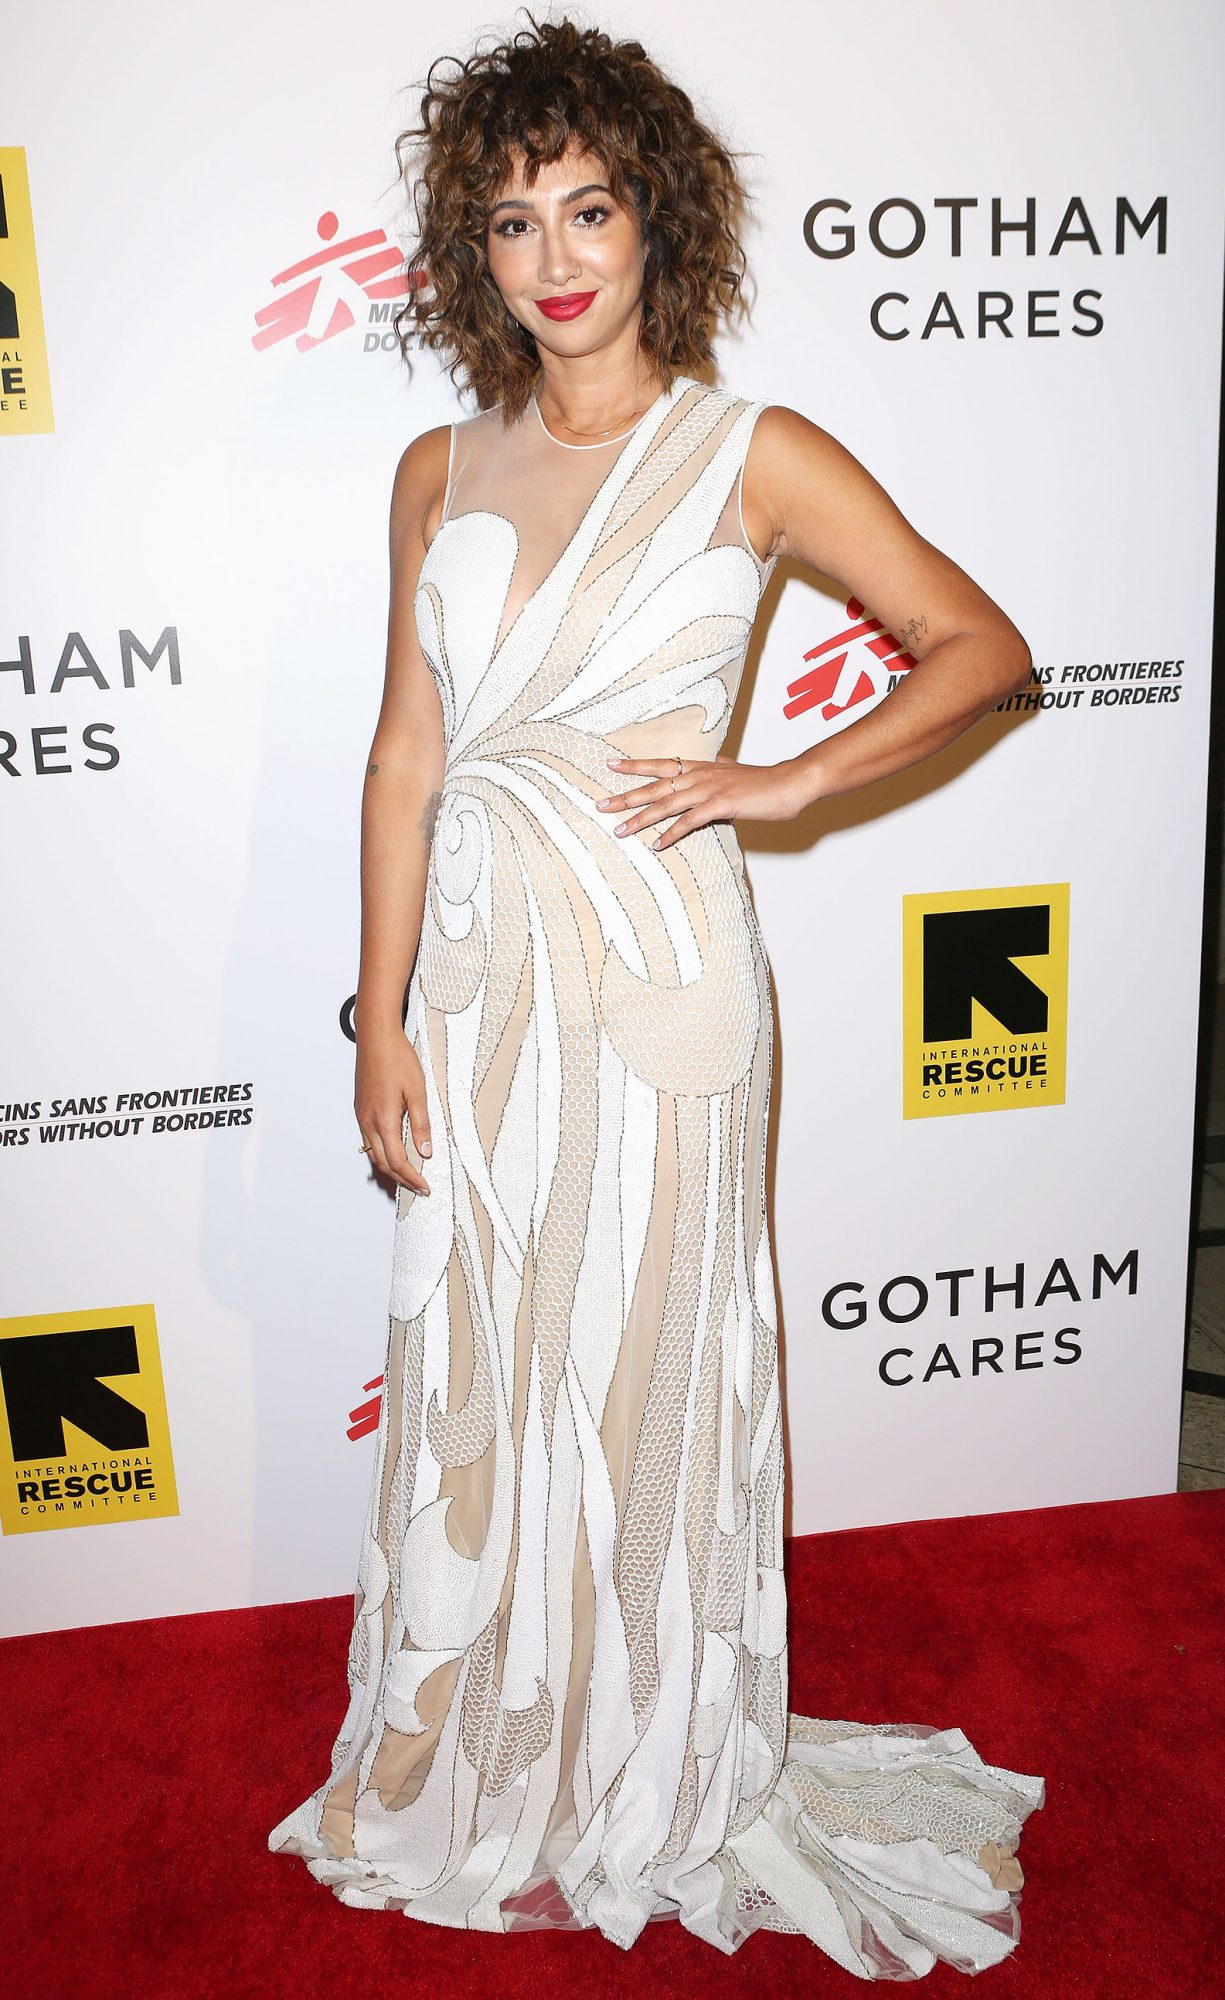 Gotham Cares hosts Inaugural Gala Fundraiser for the Syrian Humanitarian Crisis to benefit the International Rescue Committee and Medecins Sans Frontieres